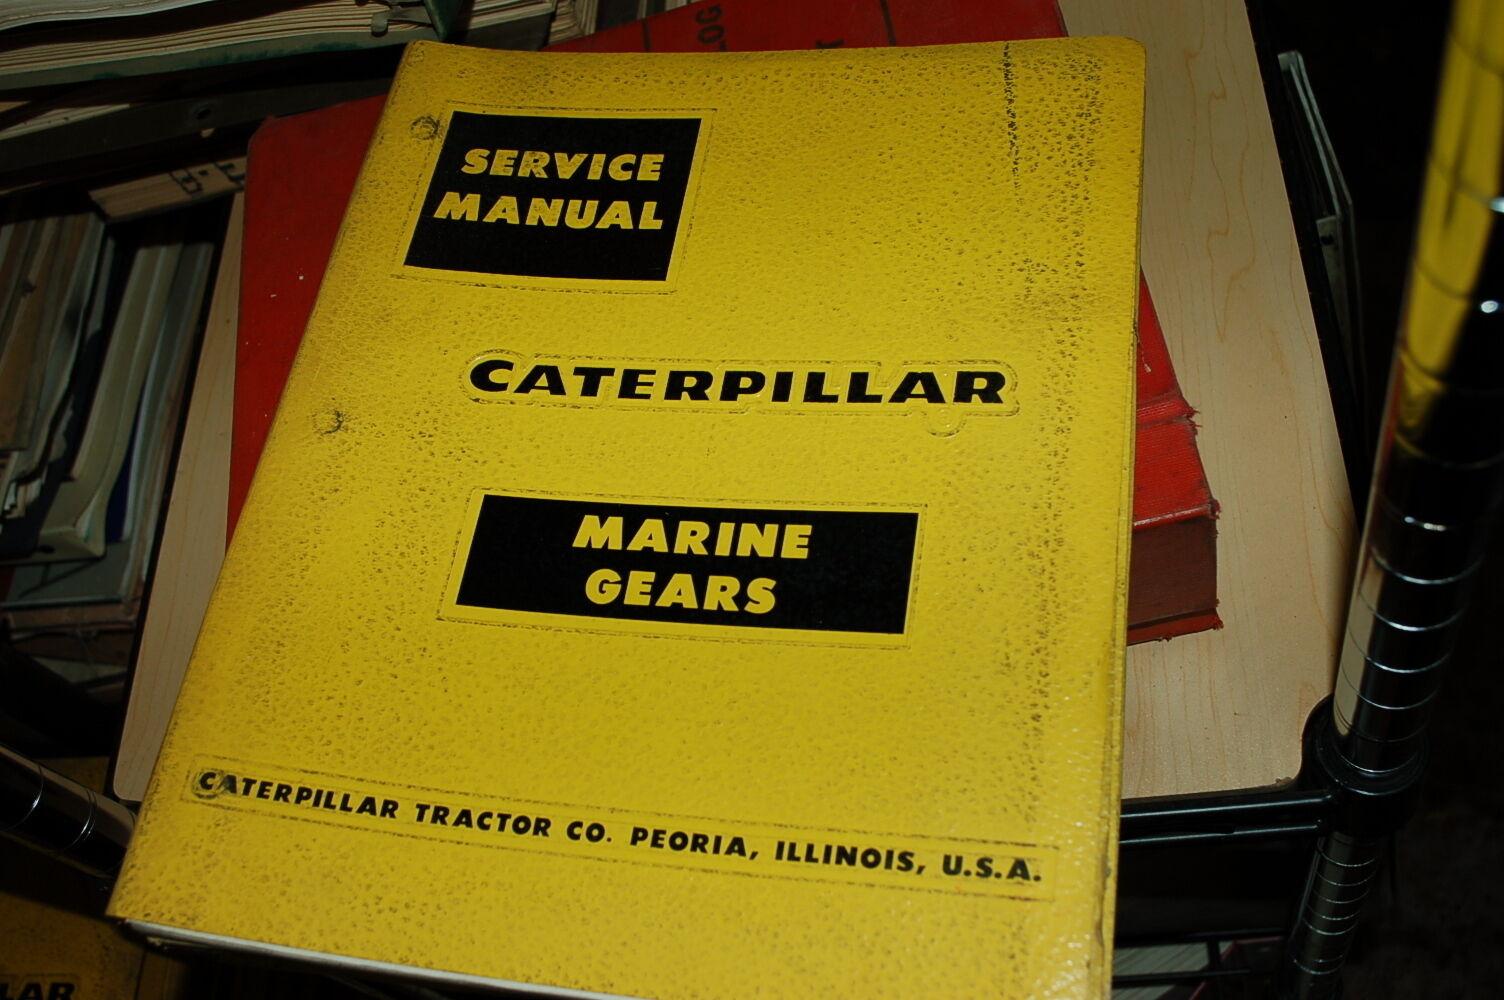 CAT Caterpillar TWIN DISC MG-506 Marine Gear Engine Service Repair Shop  Manual 1 of 6Only 2 available CAT ...